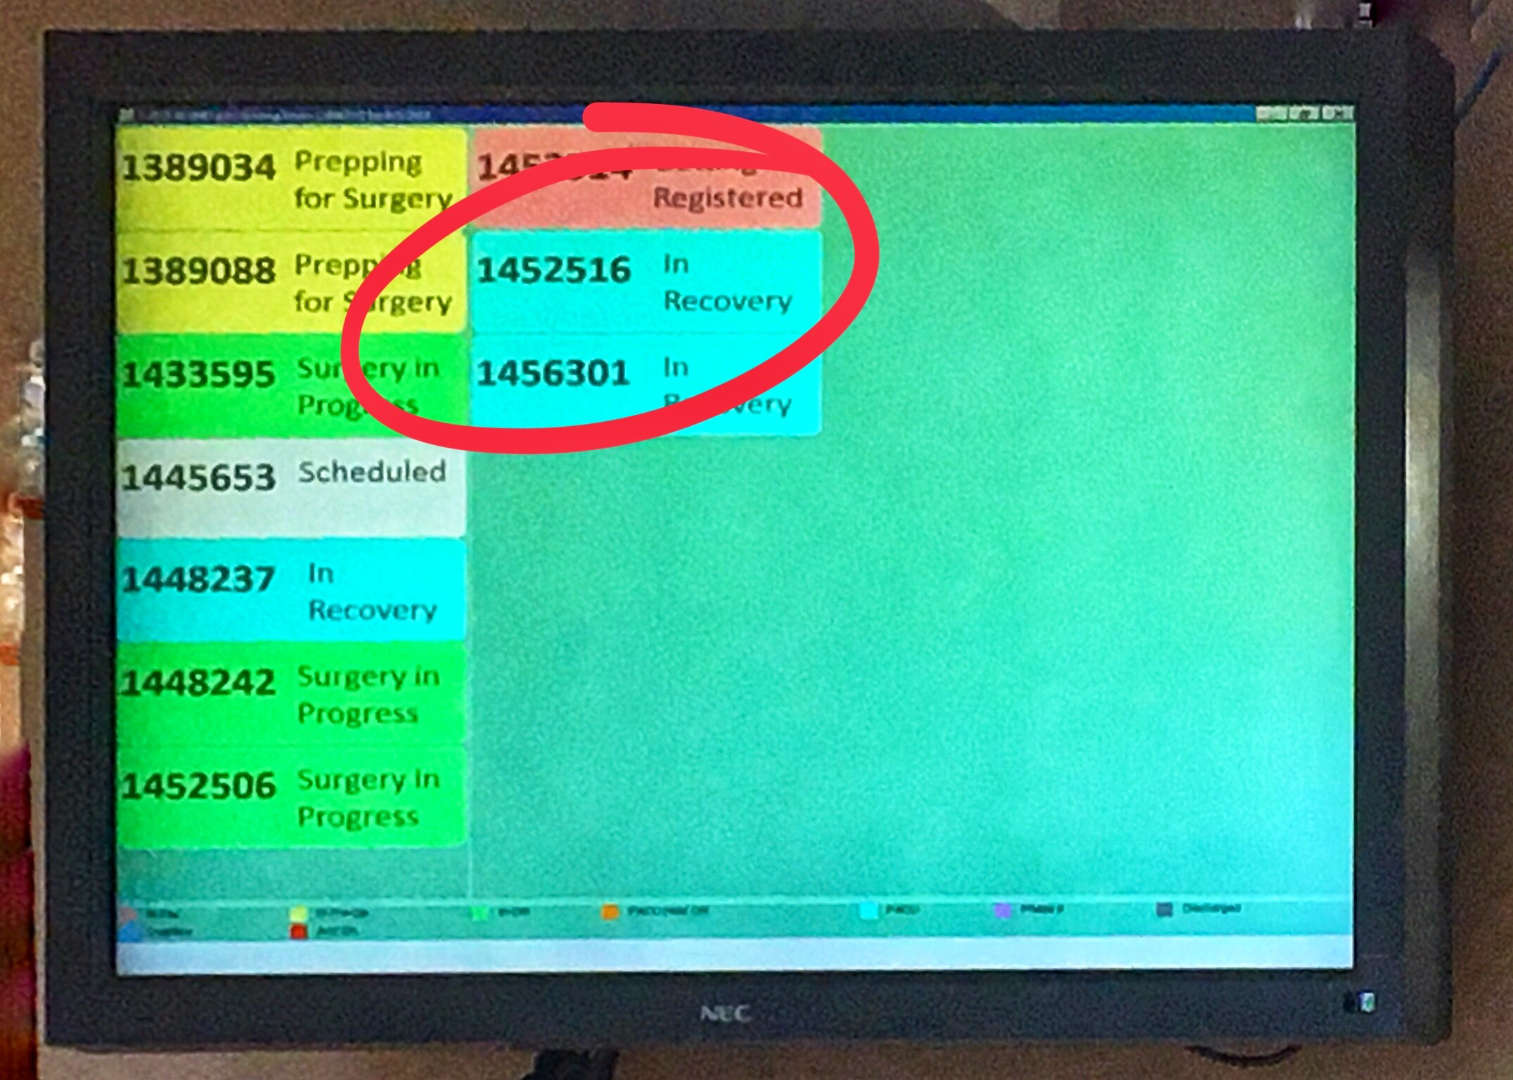 """The moment of relief when the waiting room monitor shows your patient, #1452516, """"in recovery""""."""